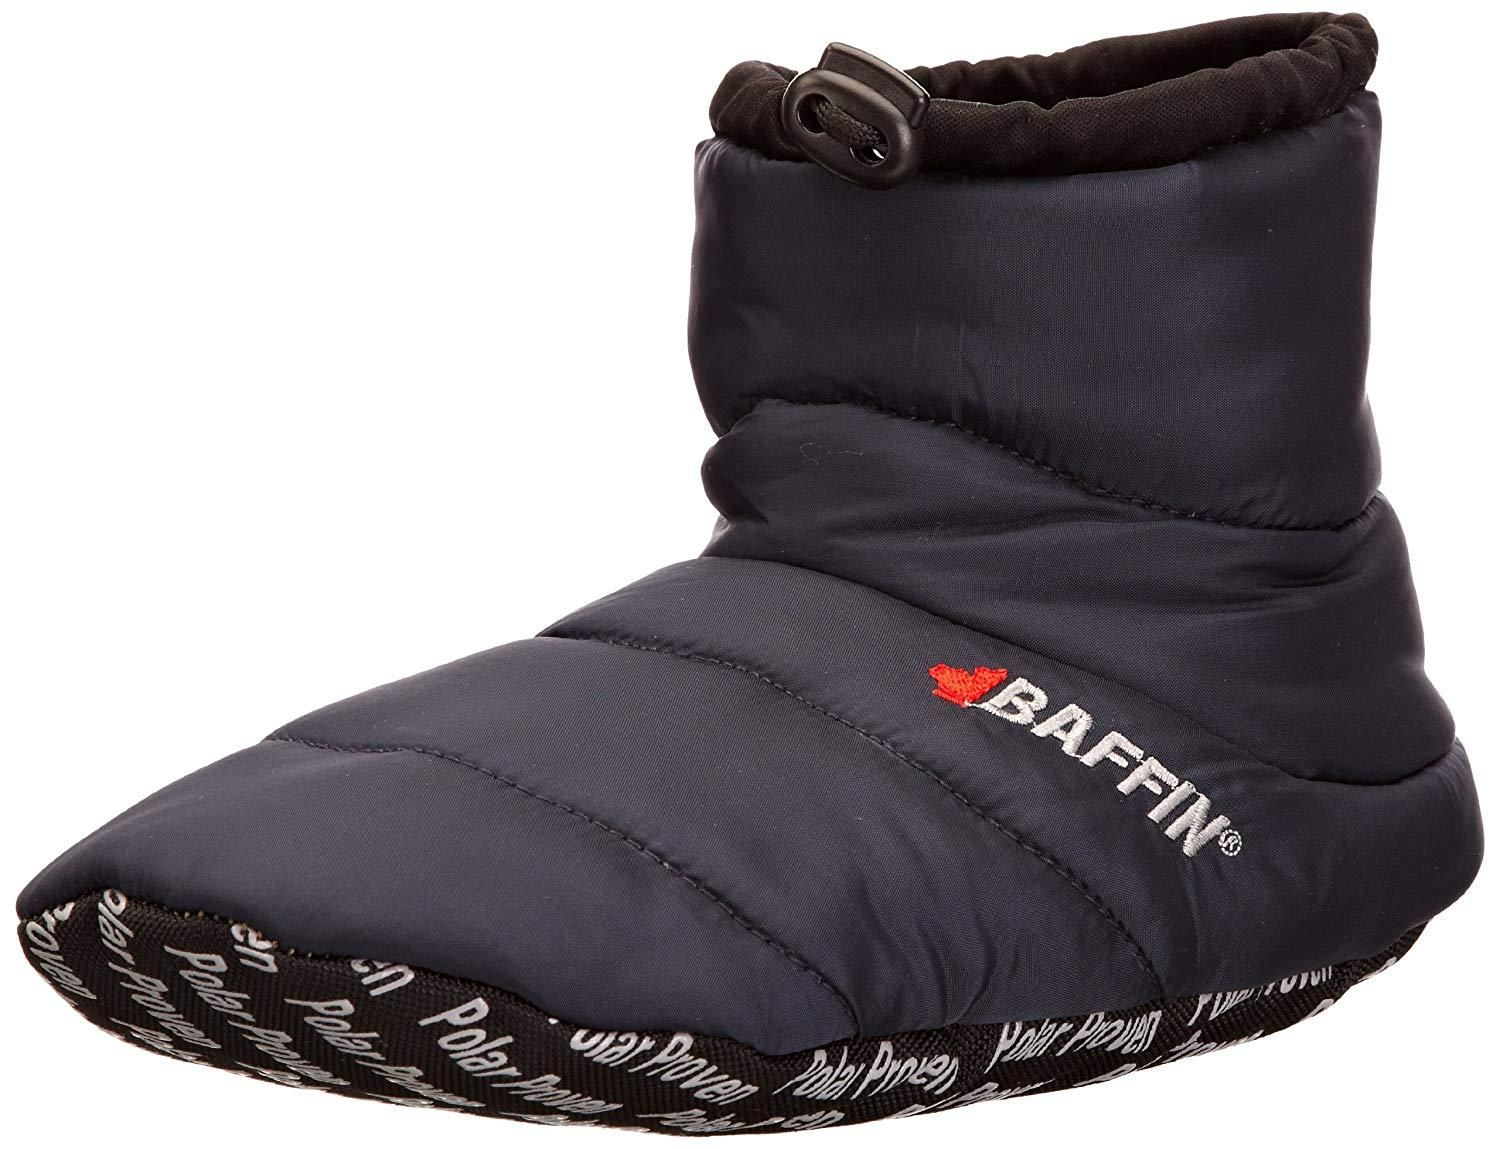 0c8bff05f61 Baffin Unisex Cush Insulated Slipper Booty in 2019   Products ...